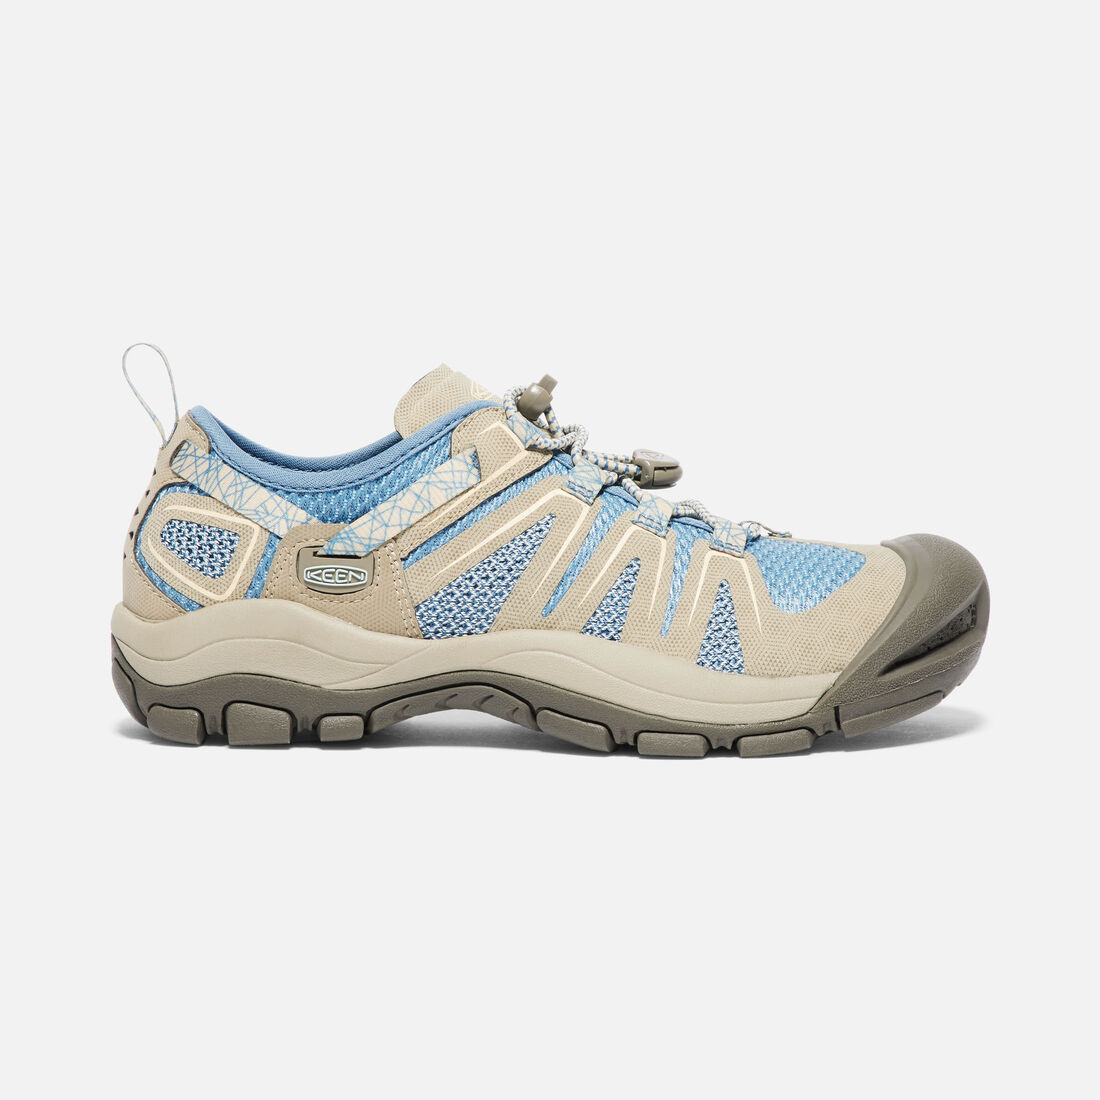 Women's MCKENZIE II in SKY DIVER/PLAZA TAUPE - large view.